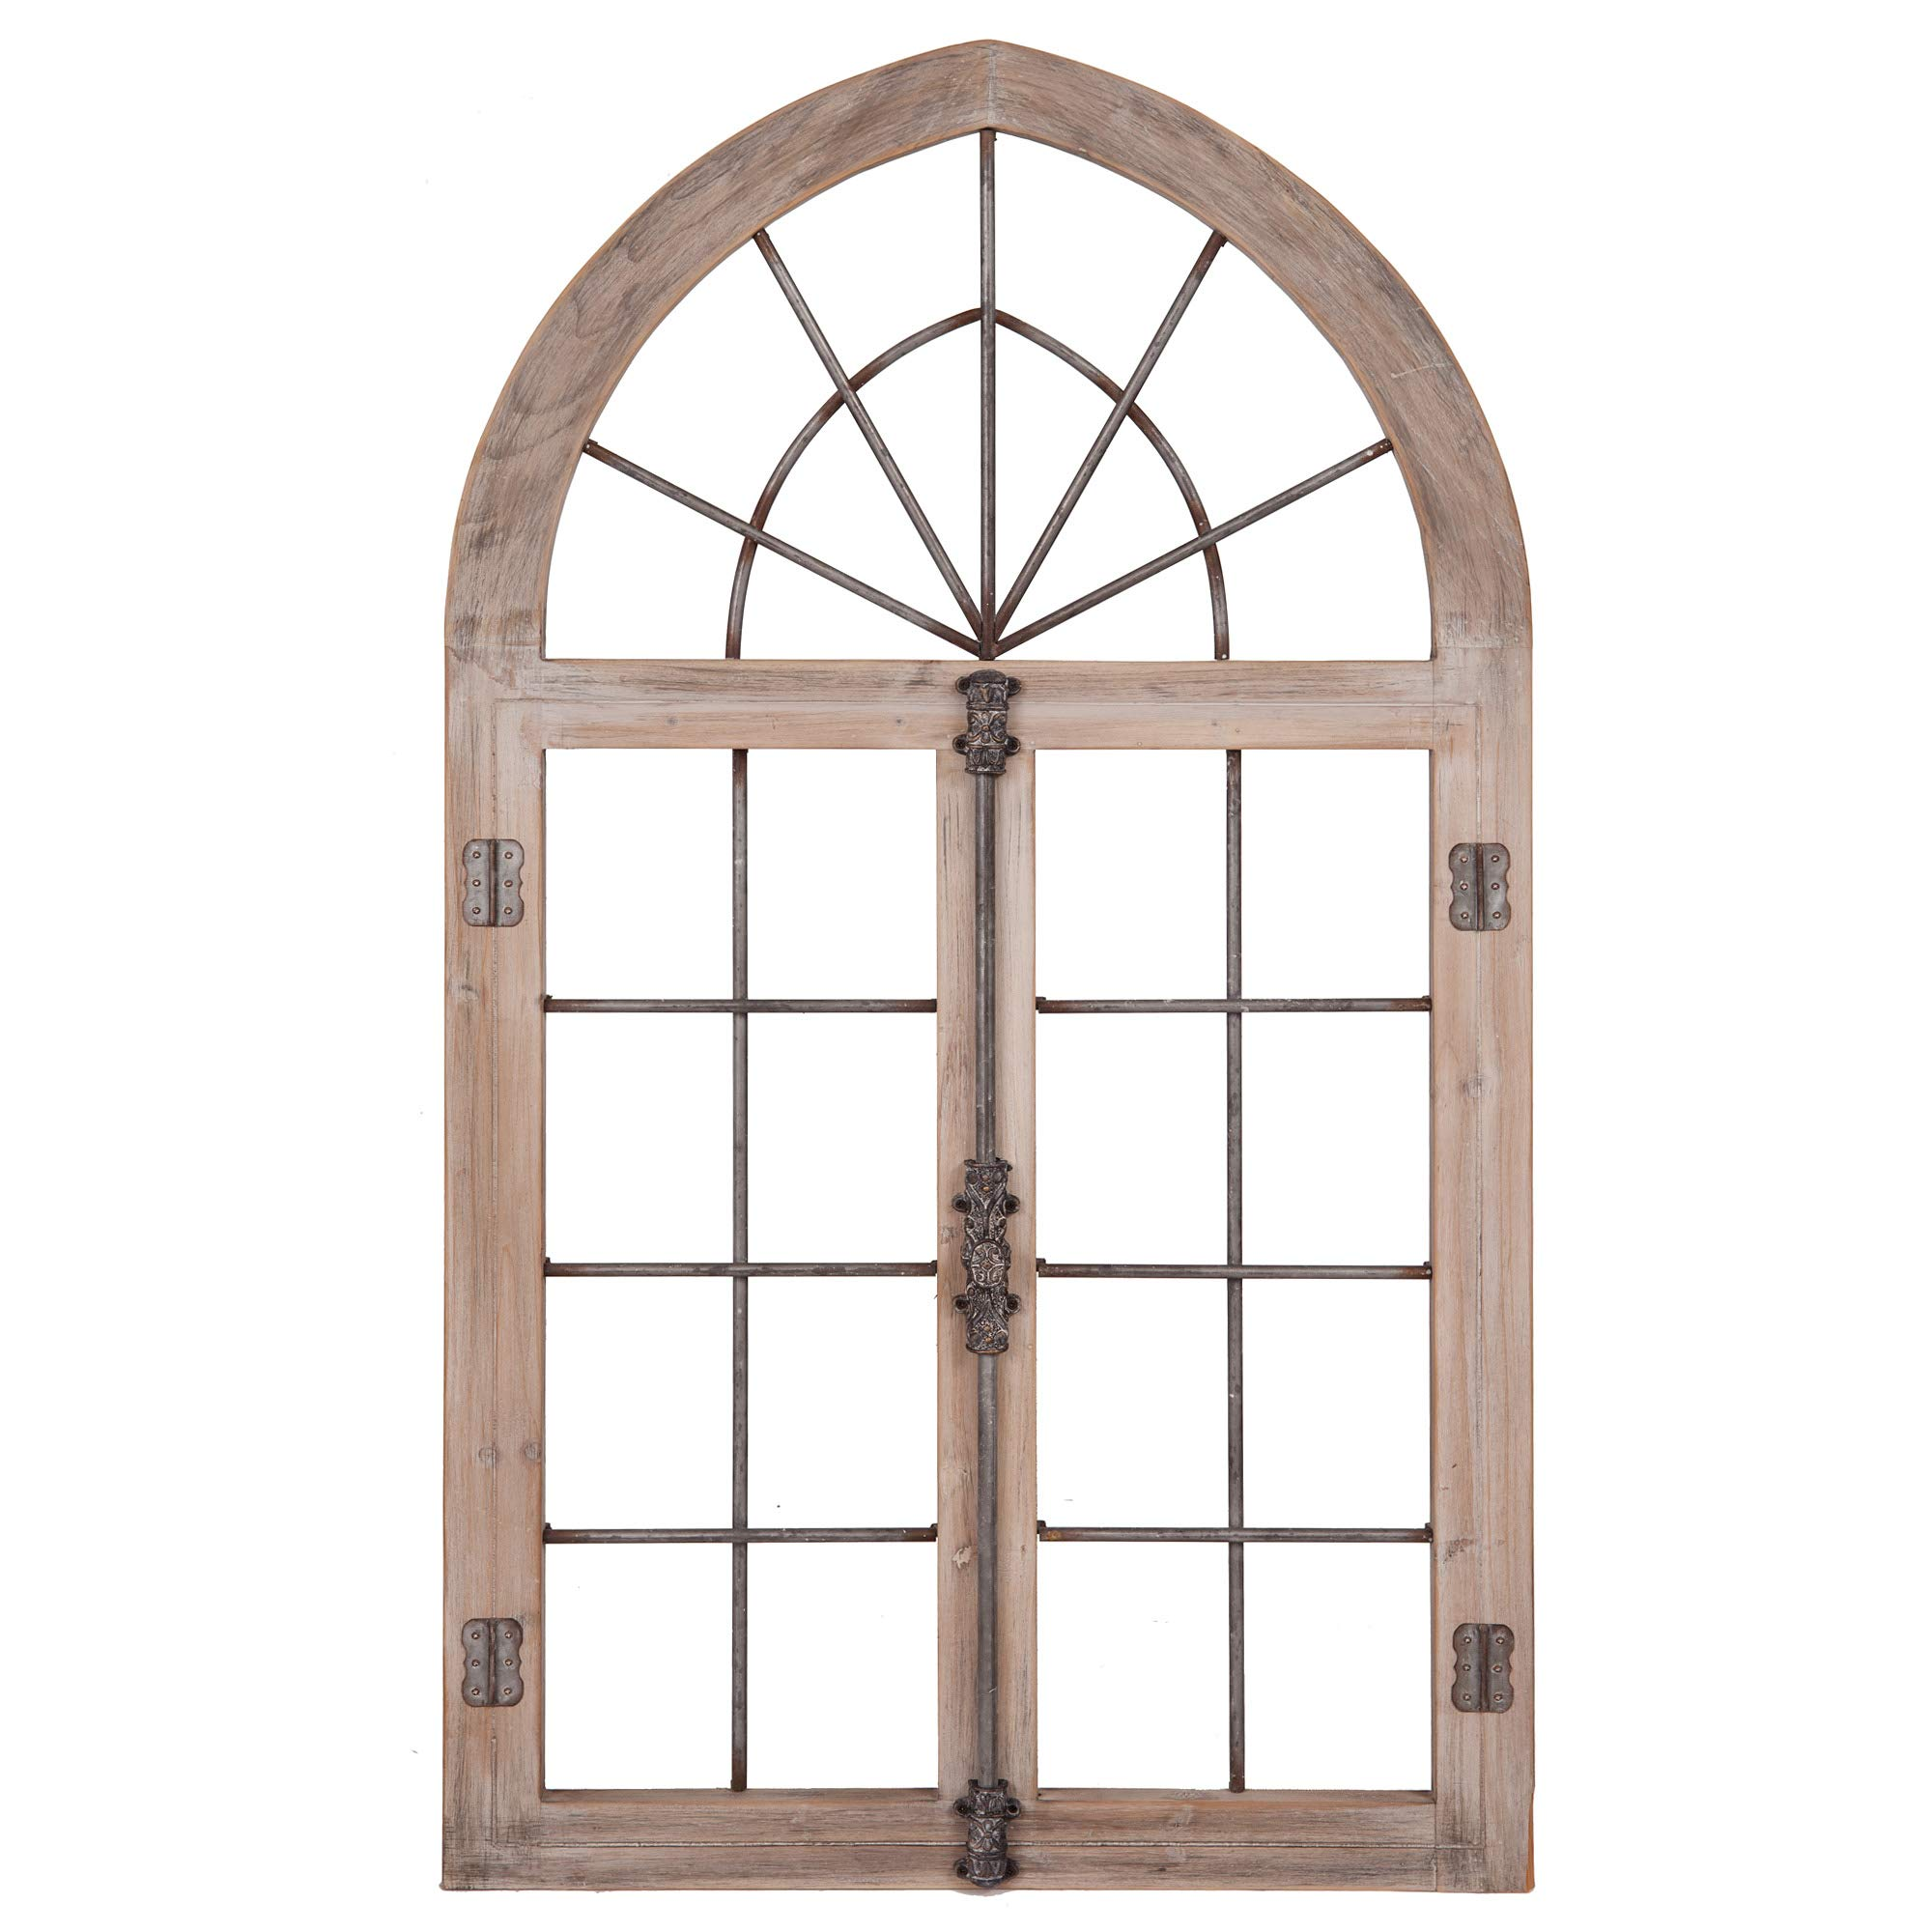 Distressed Gray Arched Cathedral Window Frame Wall Décor by Patton Wall Decor